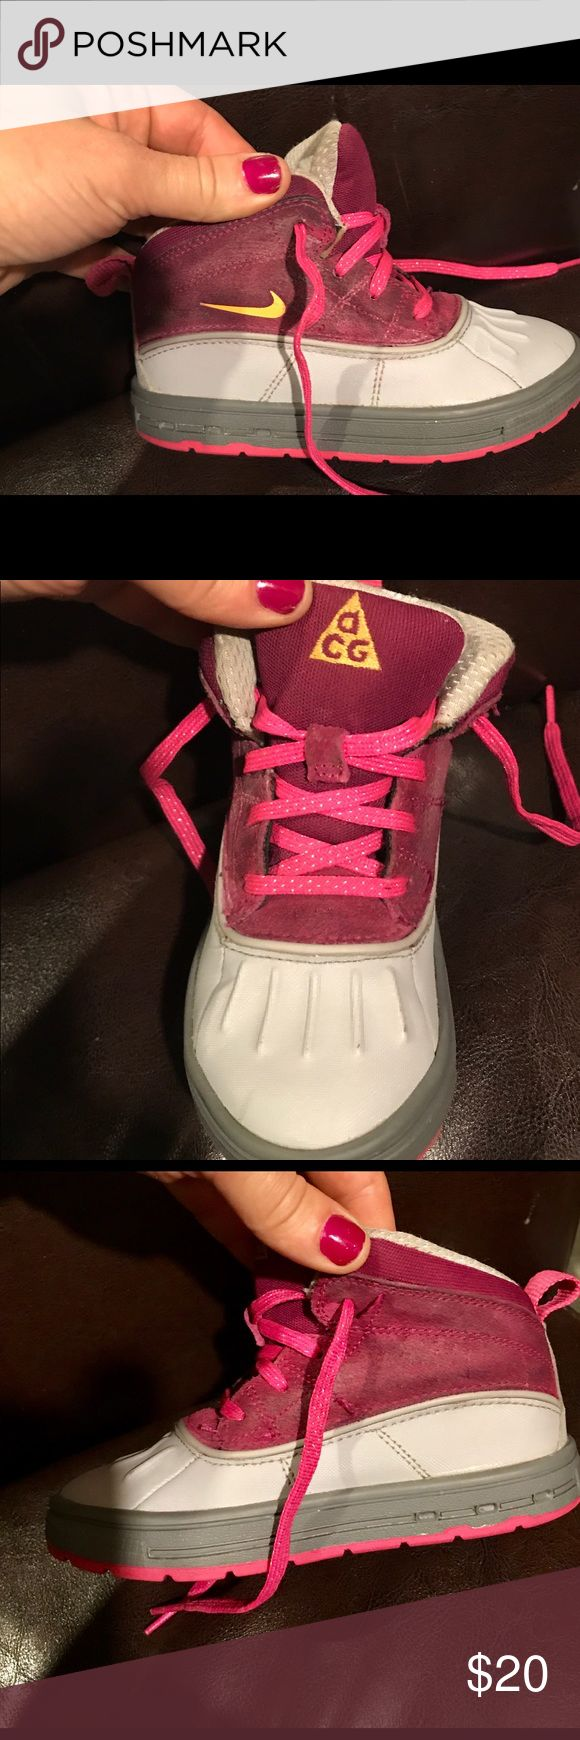 Nike ACG boots 9c toddler Excellent condition. A great alternative to clunky snow boots Nike Shoes Boots